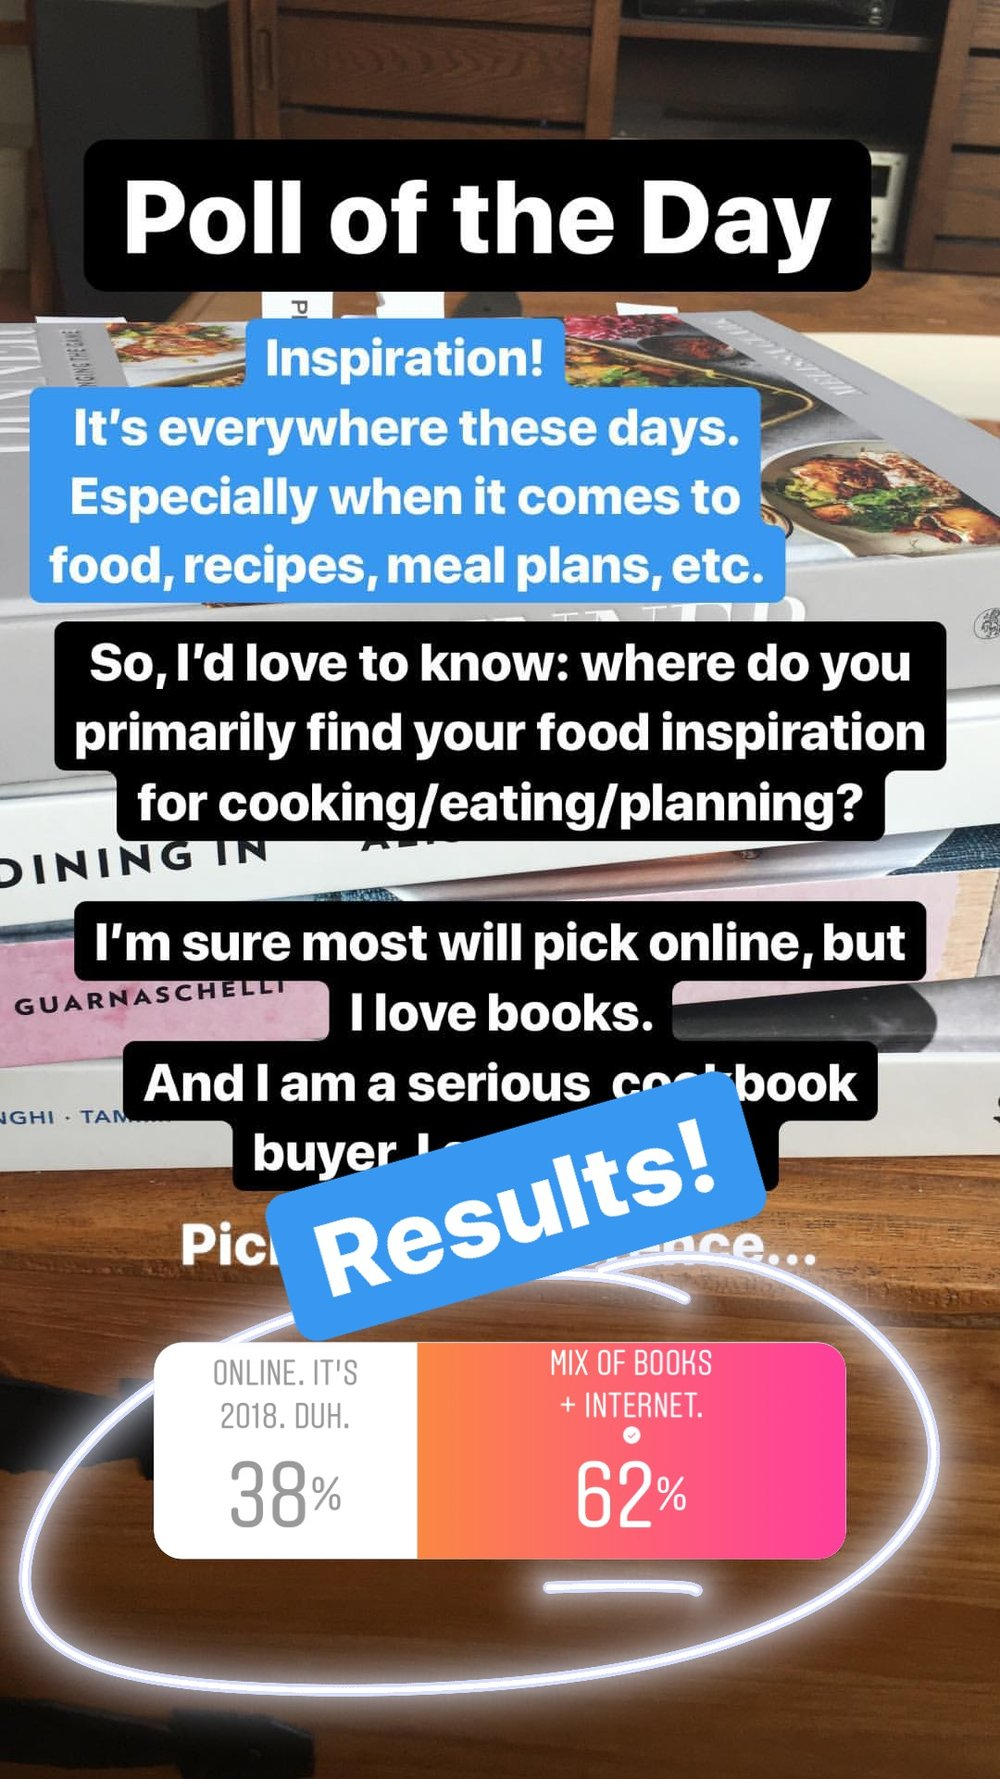 This poll was a slight unfair, don't you think? Of course, the majority of us use the Internet to find new recipes, food plans, and inspiration of all kinds. I mean, isn't that one of the draws of Instagram altogether? Finding inspiration for whatever you may need at that moment? However, I was so glad to see most of you that voted still go for the mix. Because that's what I do, too. I love books, cookbooks, book stores, all of it.   In fact, on my very first date with Seth, we wandered around our (now) favorite local bookshop! And we even looked at cookbooks! Wow. If we only knew back then what we would be doing today...   I find loads of recipes and food inspiration online, but lately I'm finding it fun to collect mass amounts of cookbooks and actually sit down to read them. Away from my computer and phone. And iPad. And that's how we meal plan for the week! I love seeing new ideas and dishes online, but for right now, I'm sticking to books. Let me know if you'd like to learn about some of my favorites!